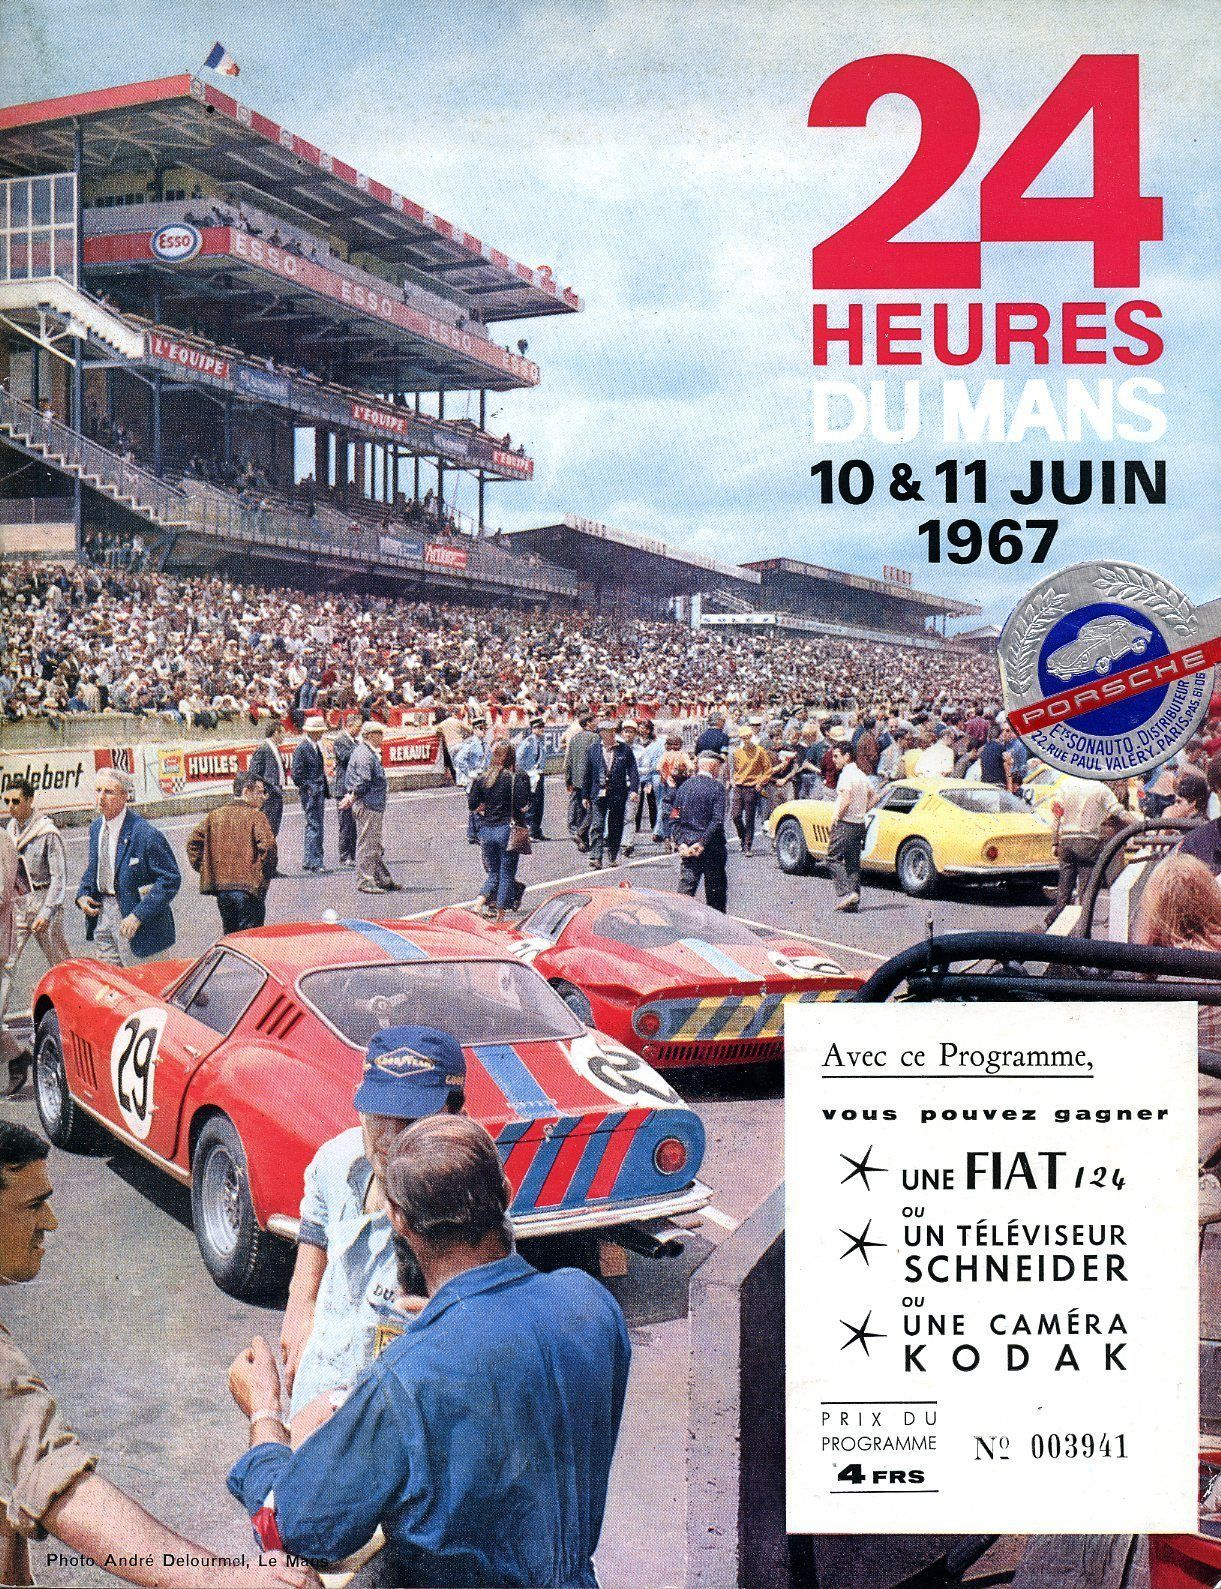 1967 Le Mans Race Program Dan Gurney Aj Foyt Ford Mkiv Wins